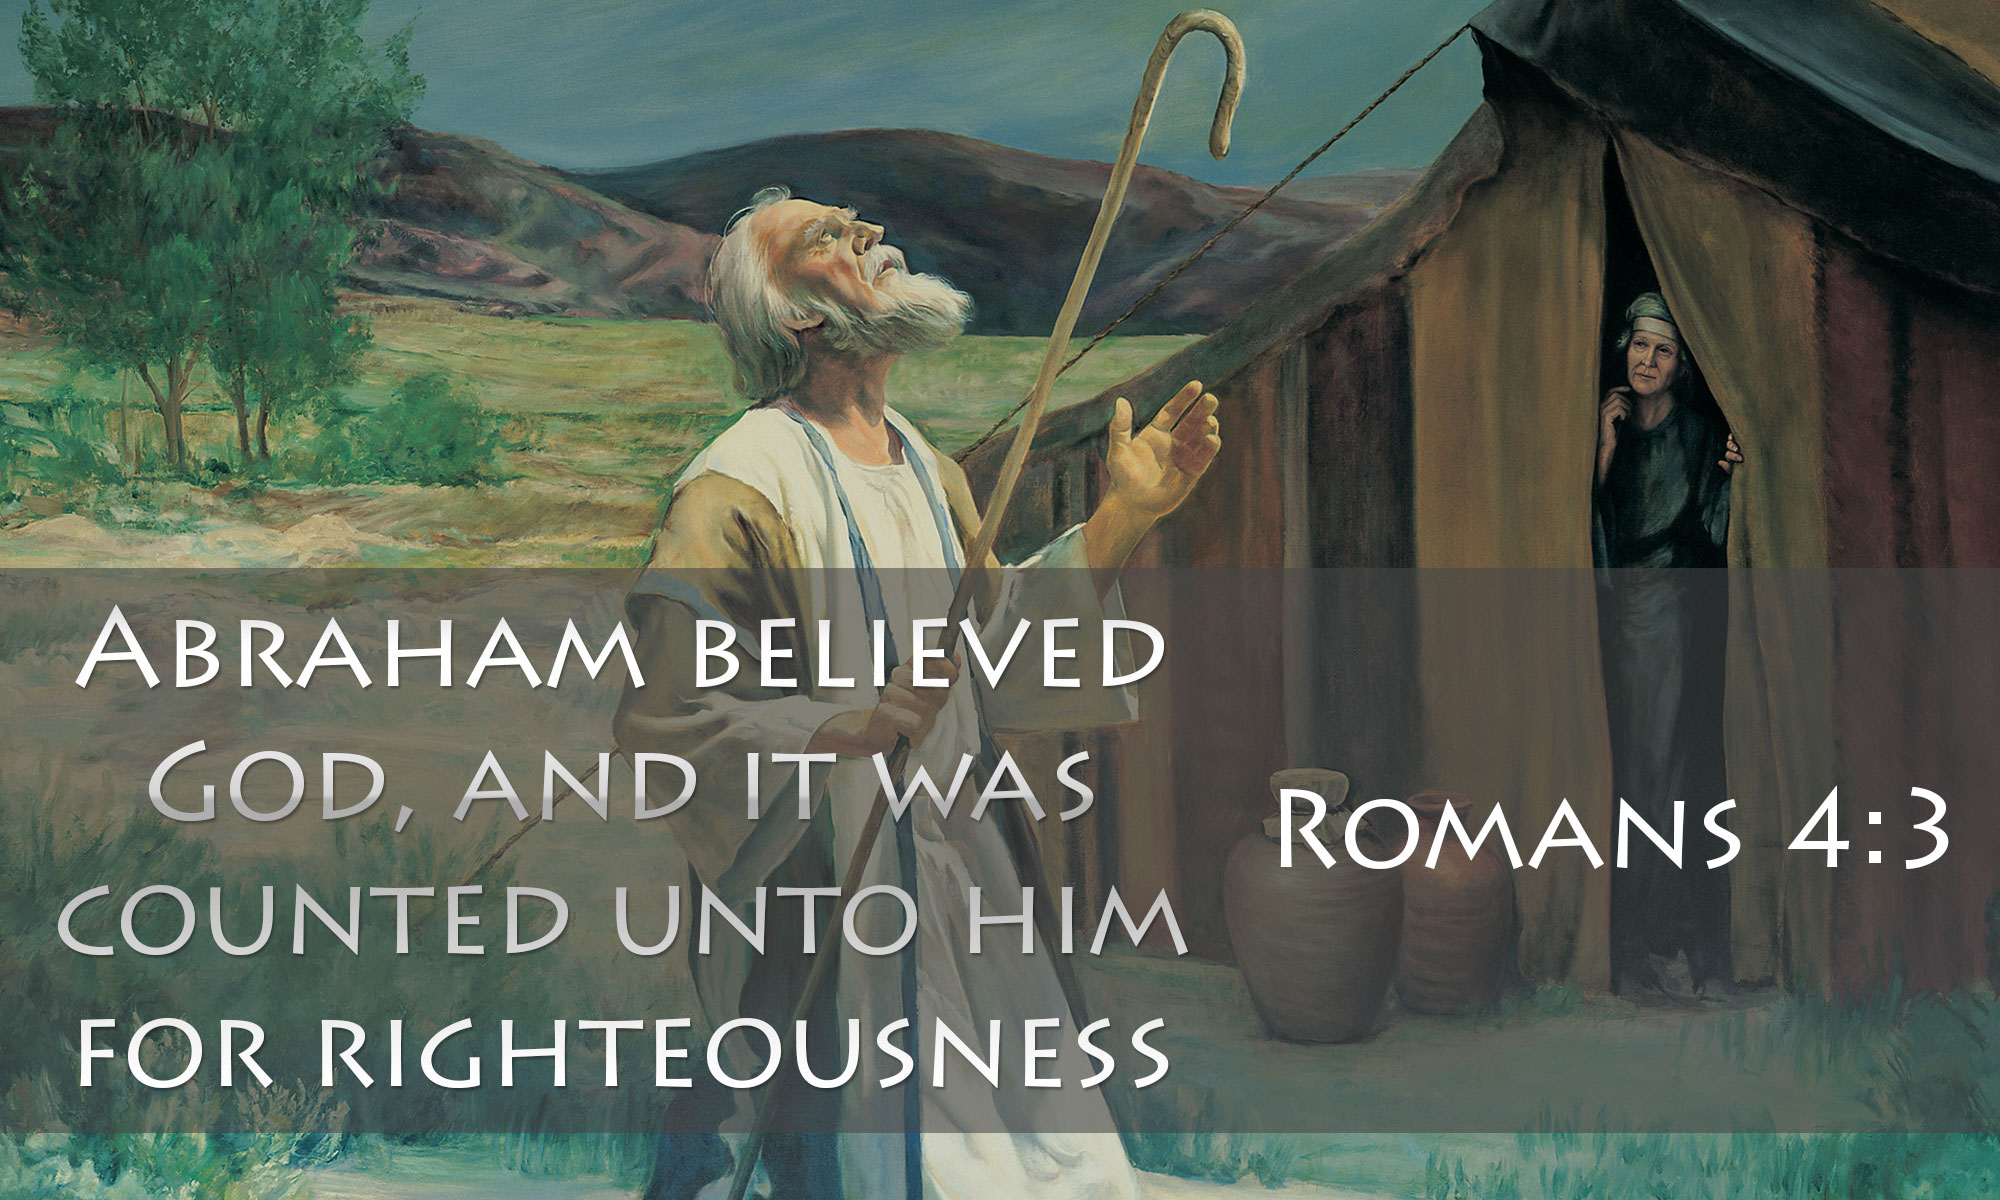 Abraham believed God